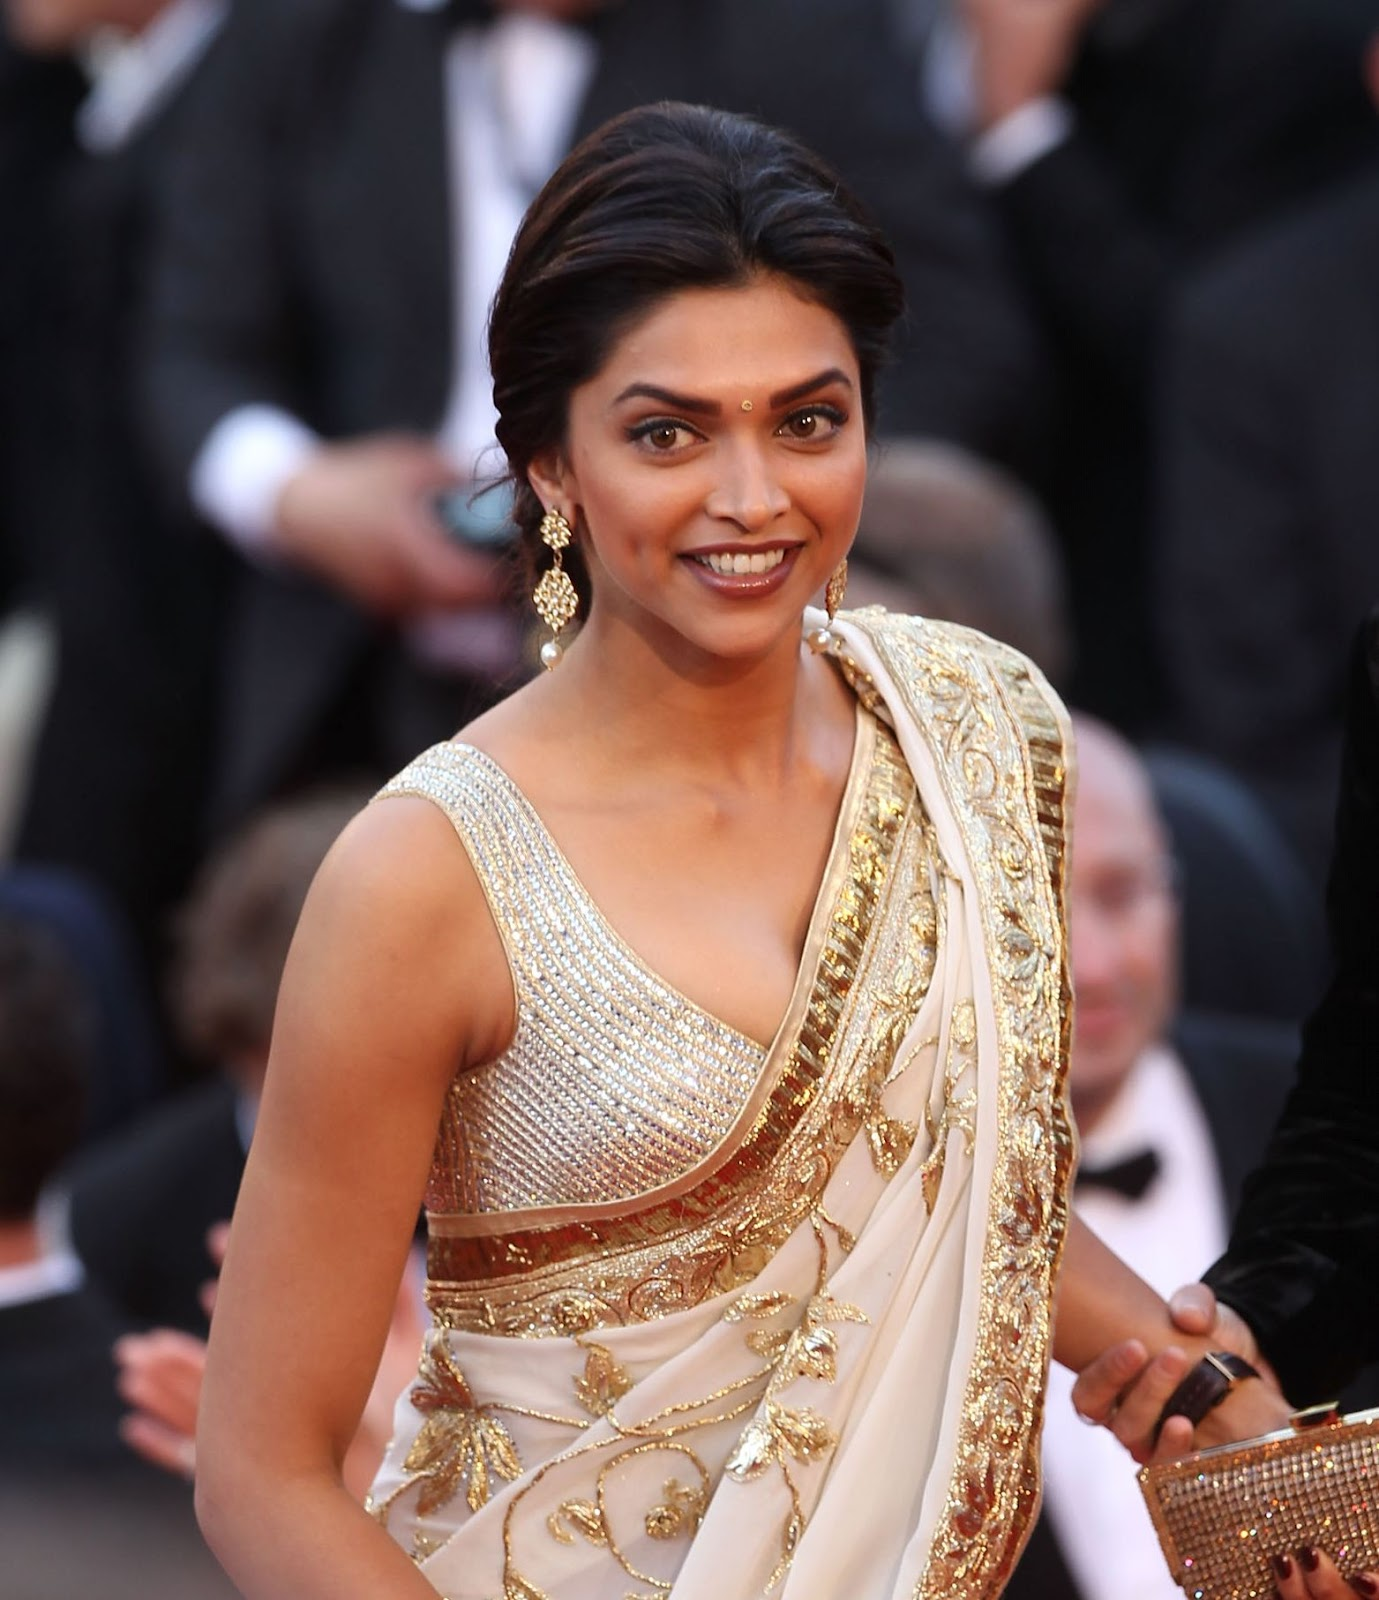 High Quality Bollywood Celebrity Pictures: Deepika Padukone Looks Hot ...